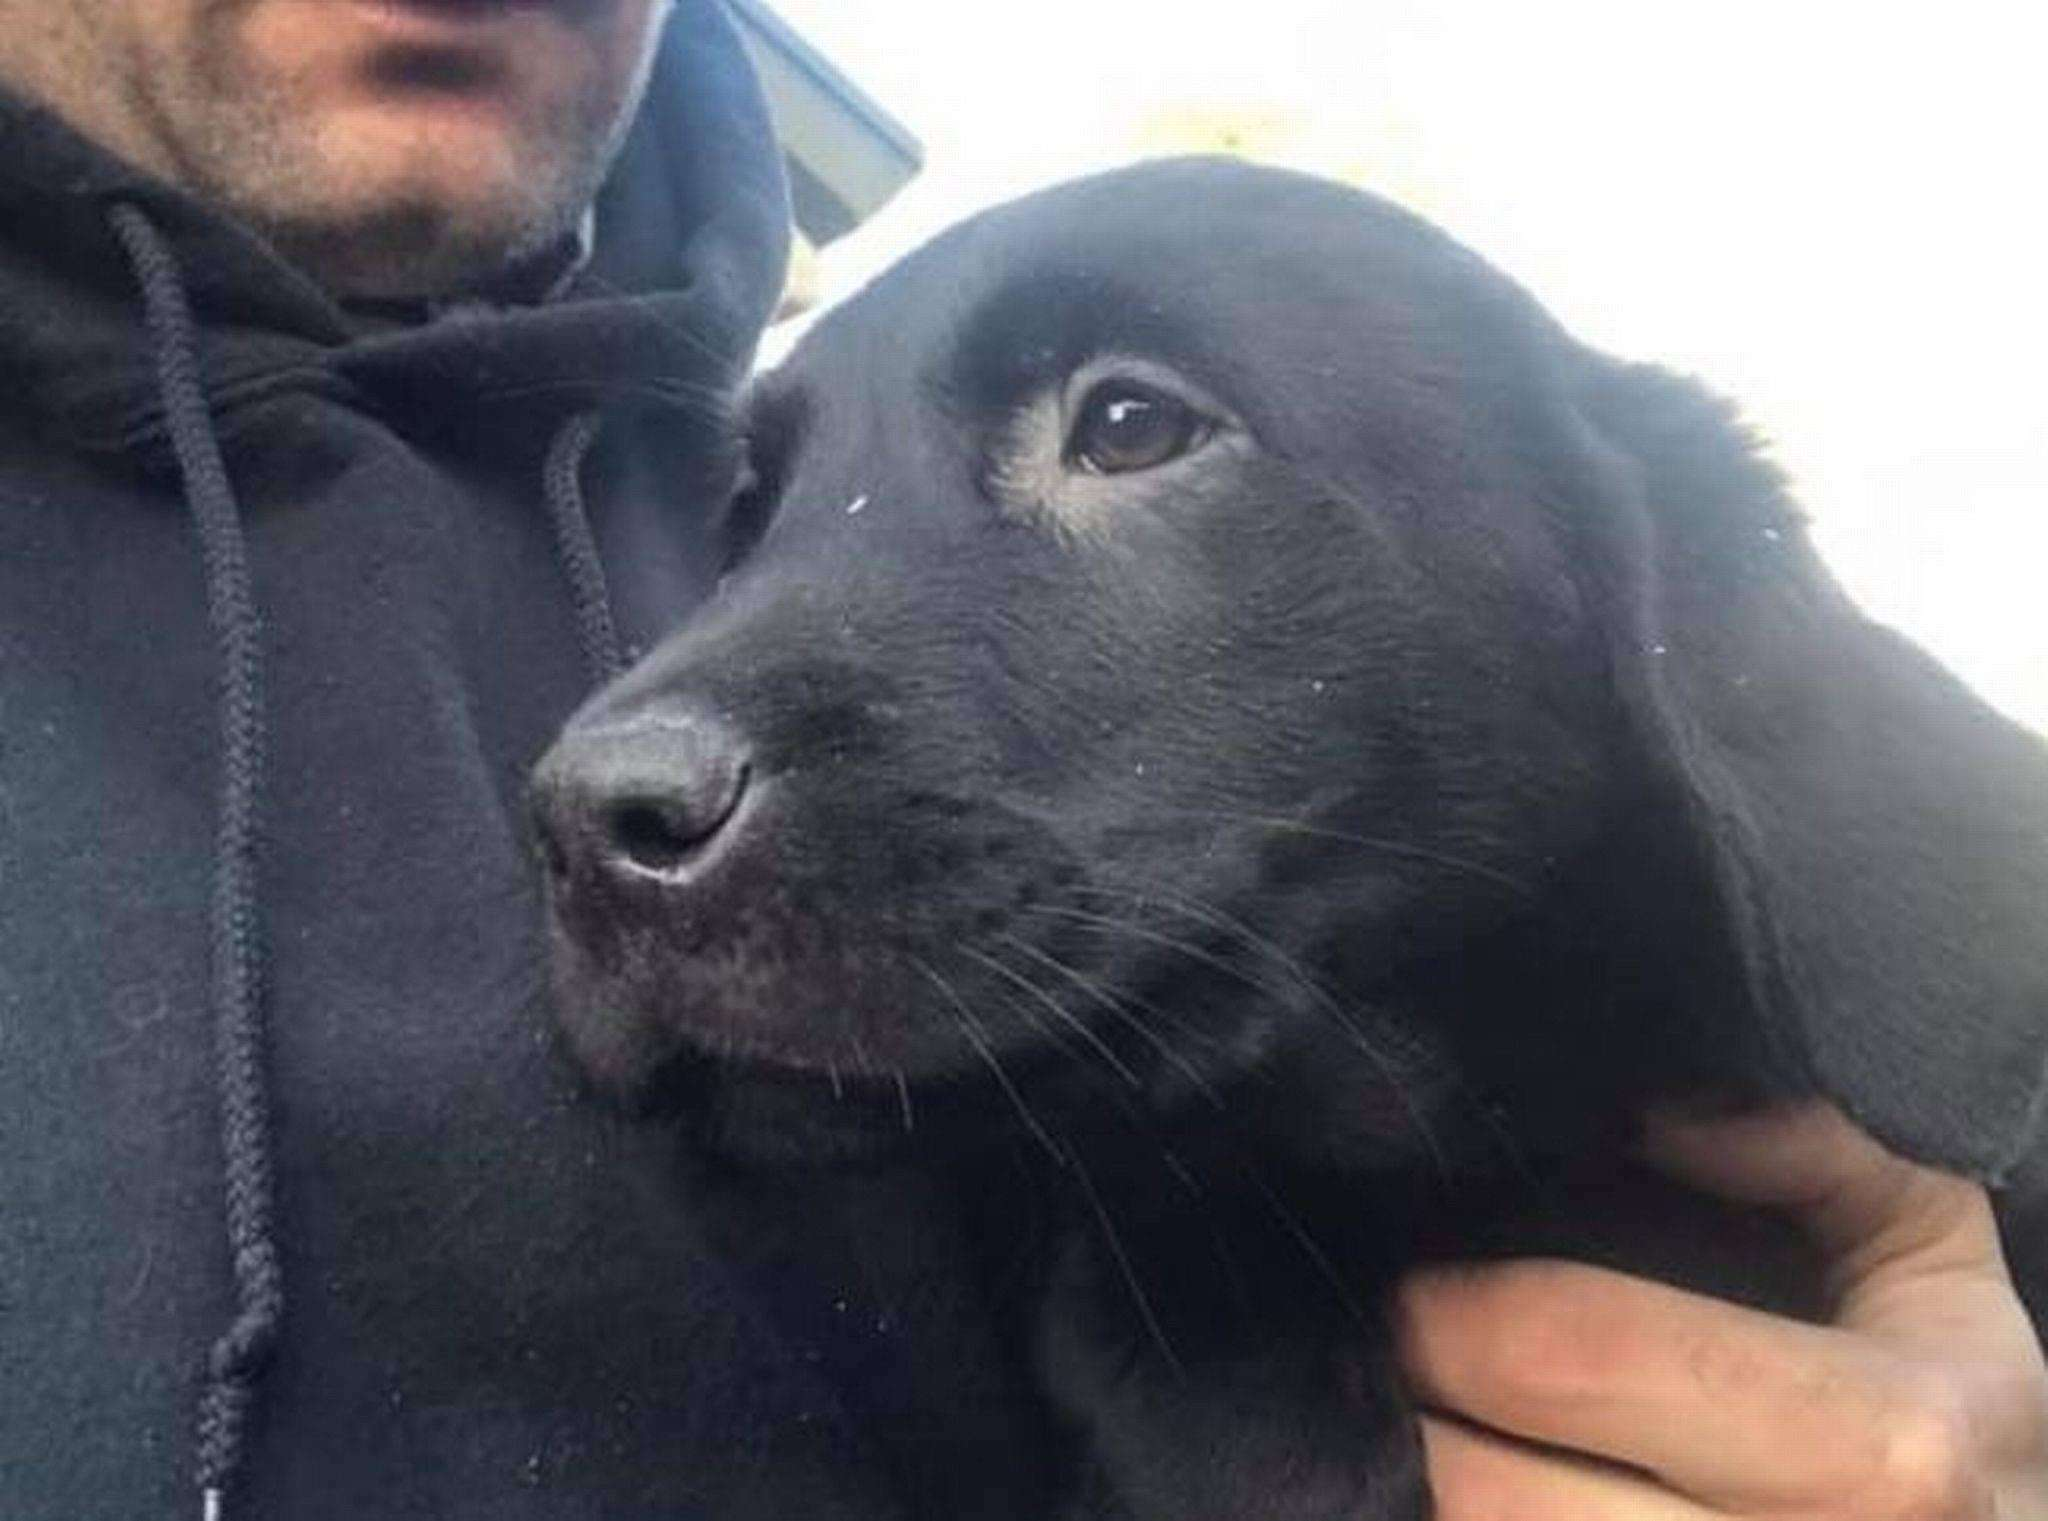 Families left 'devastated' as dogs and puppies stolen in separate overnight thefts #PetTheftReform